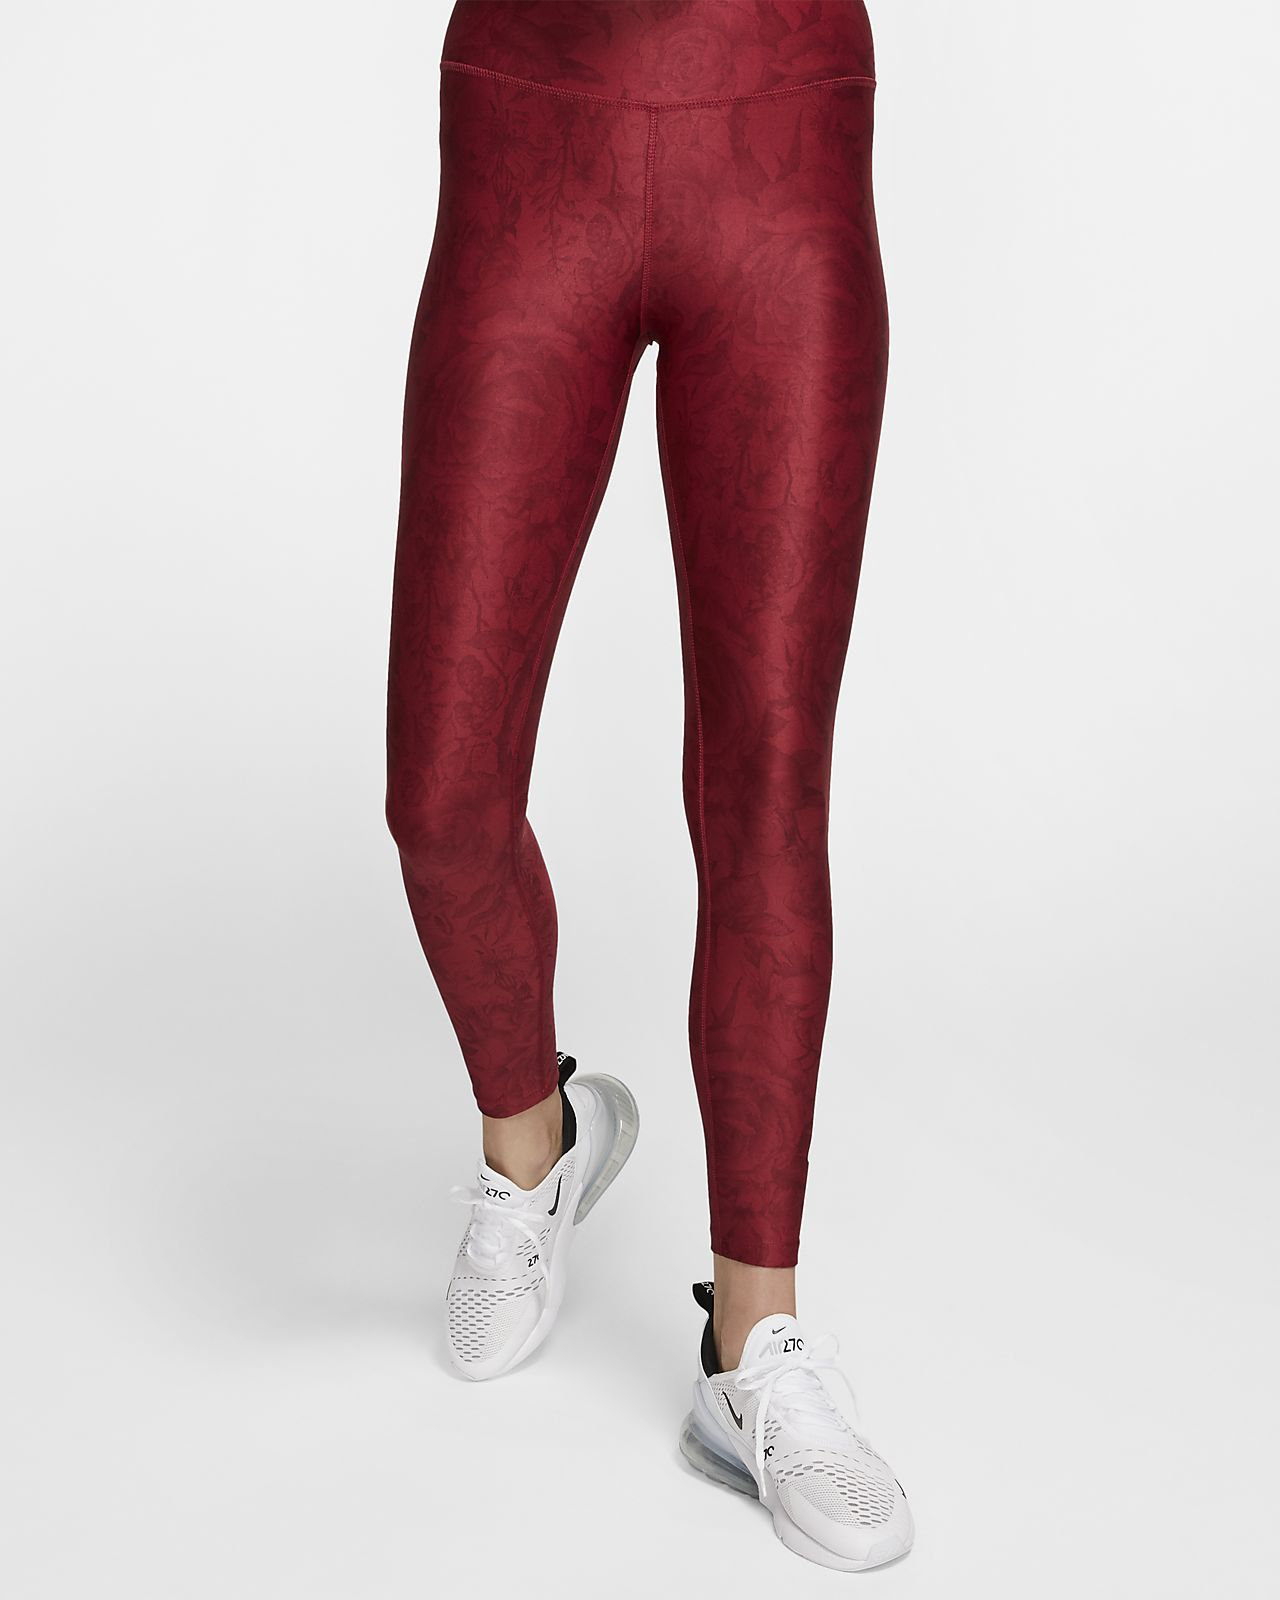 England Women's 7/8 Football Leggings